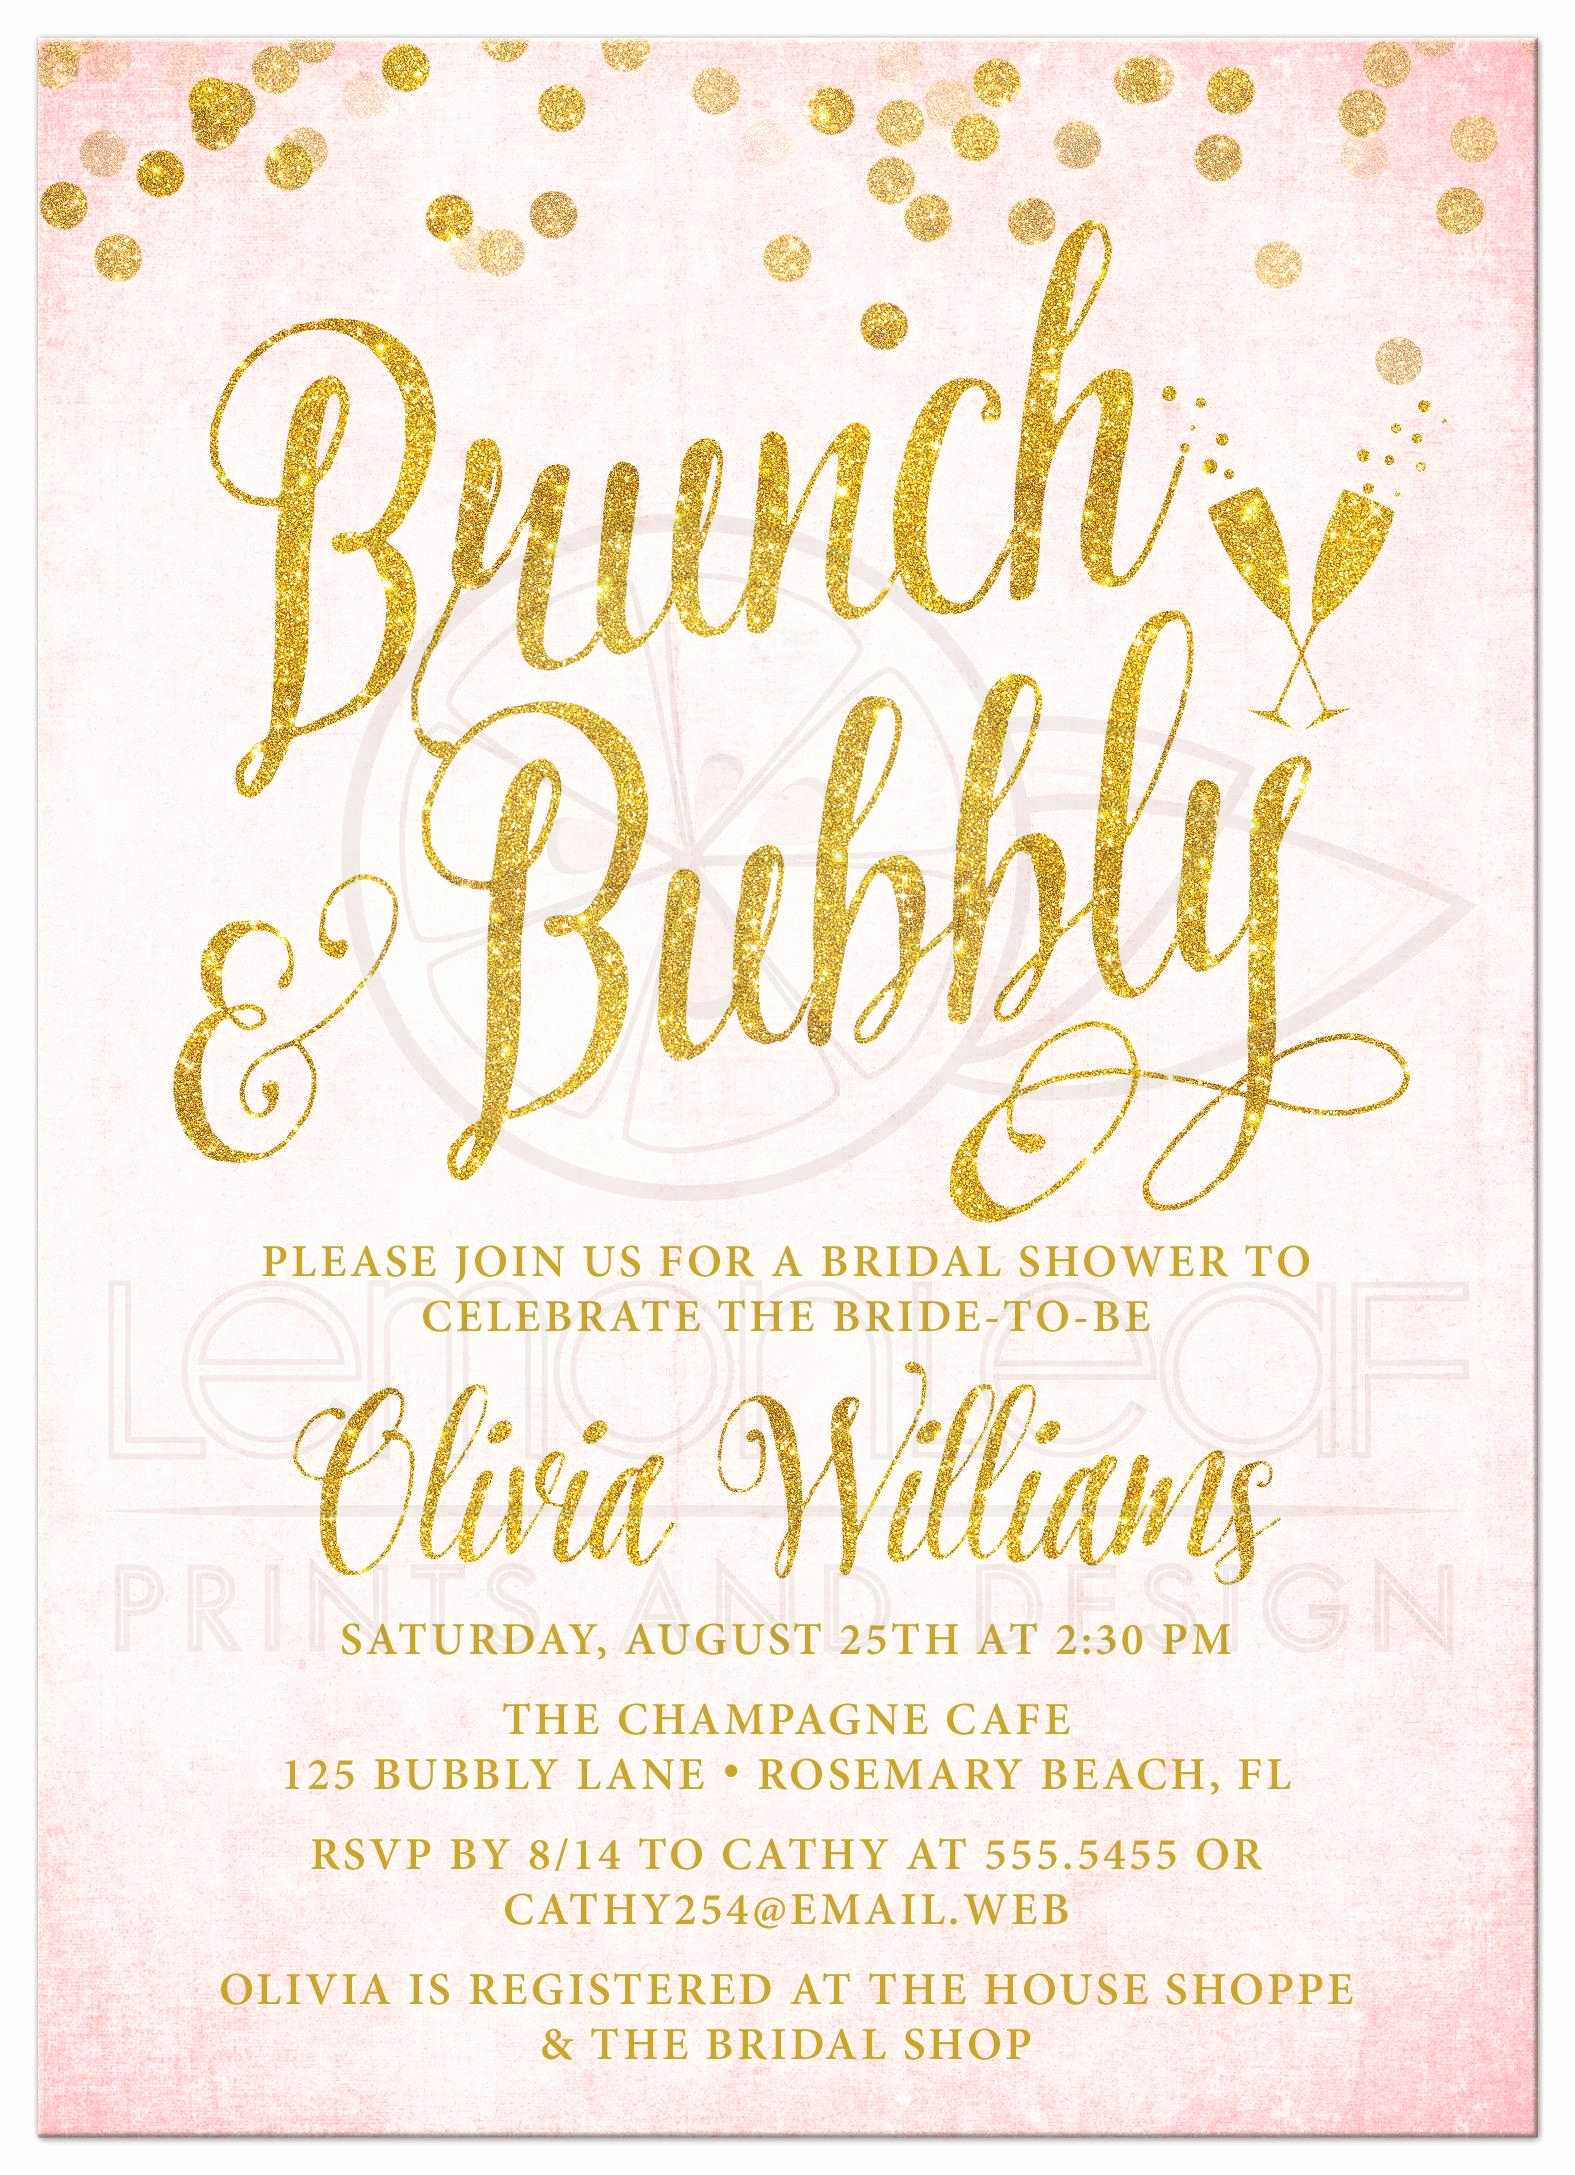 Bridal Brunch Invitation Wording New Pink & Gold Brunch & Bubbly Bridal Shower Invitations